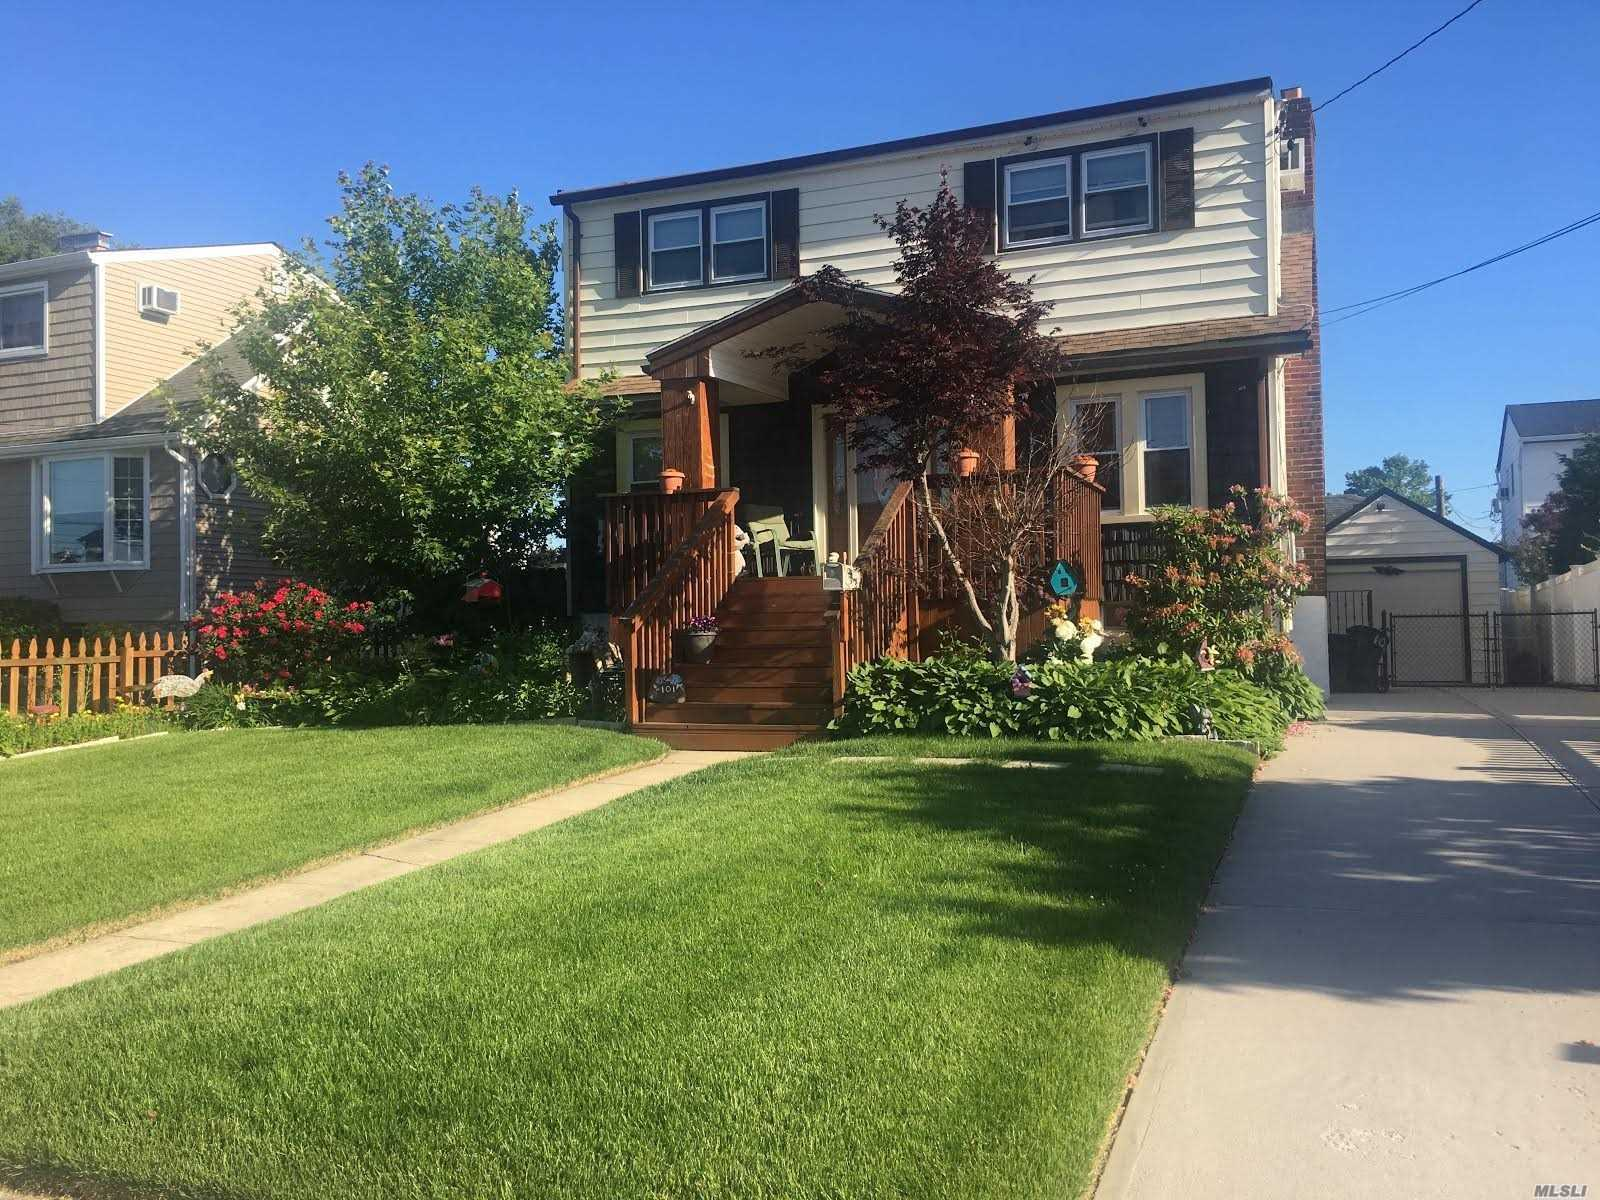 Beautiful and Charming Home Located In The Desirable Ocean Lea Section, (School 8) With 3 Bedrooms, 2 Full Bathrooms, Finished Basement, An Above-Ground Pool and a 1 Car Detached Garage. Great Location On Quiet Residential Street Close To Shopping, Schools, All... Flood is Transferable and is $1, 557.00